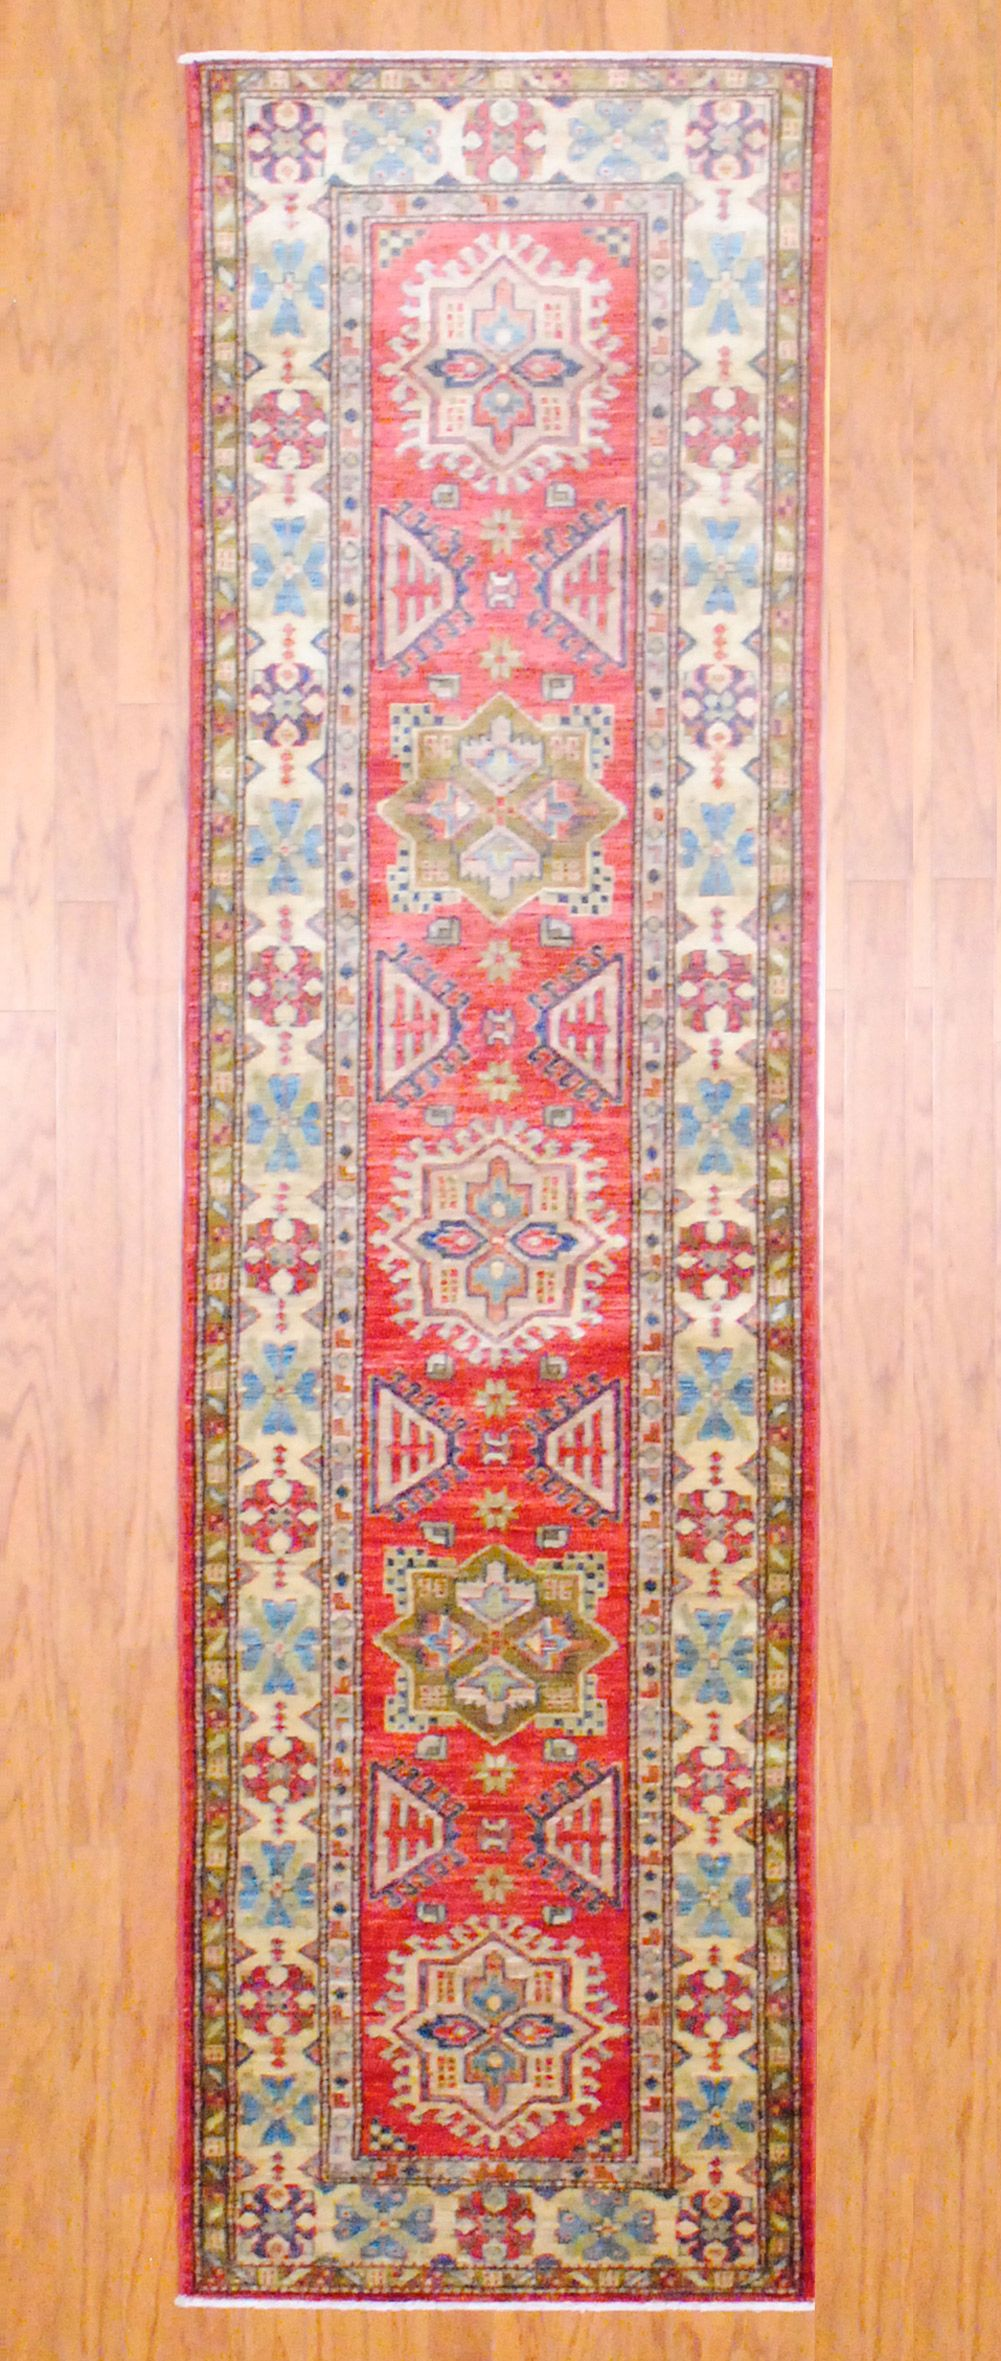 Afghan Hand Knotted Kazak 2 7 X 9 3 Herat Oriental Rugs Hand Knotted Afghan Knots